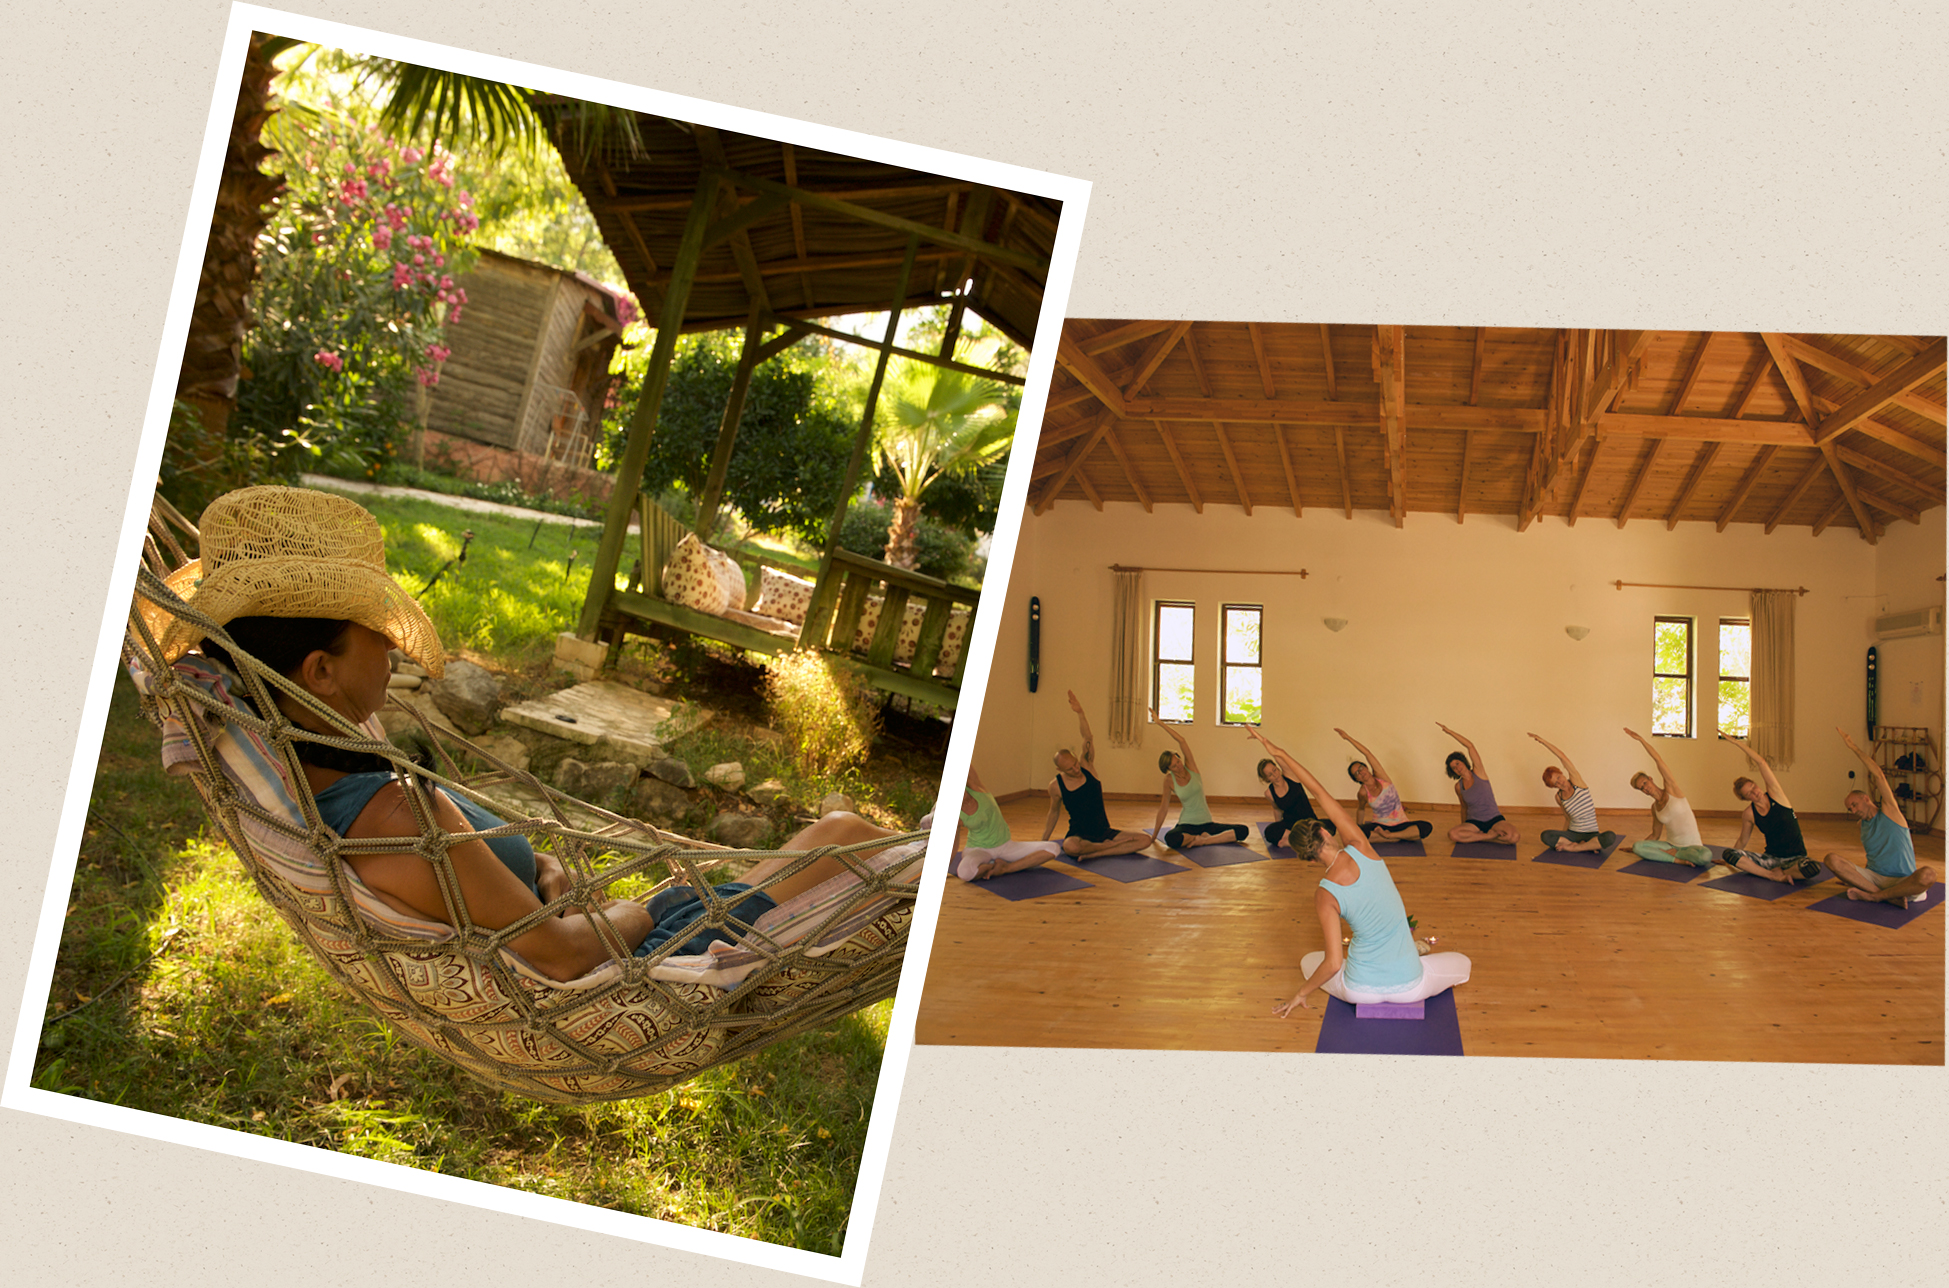 relax in a hammock and see our Yoga hall